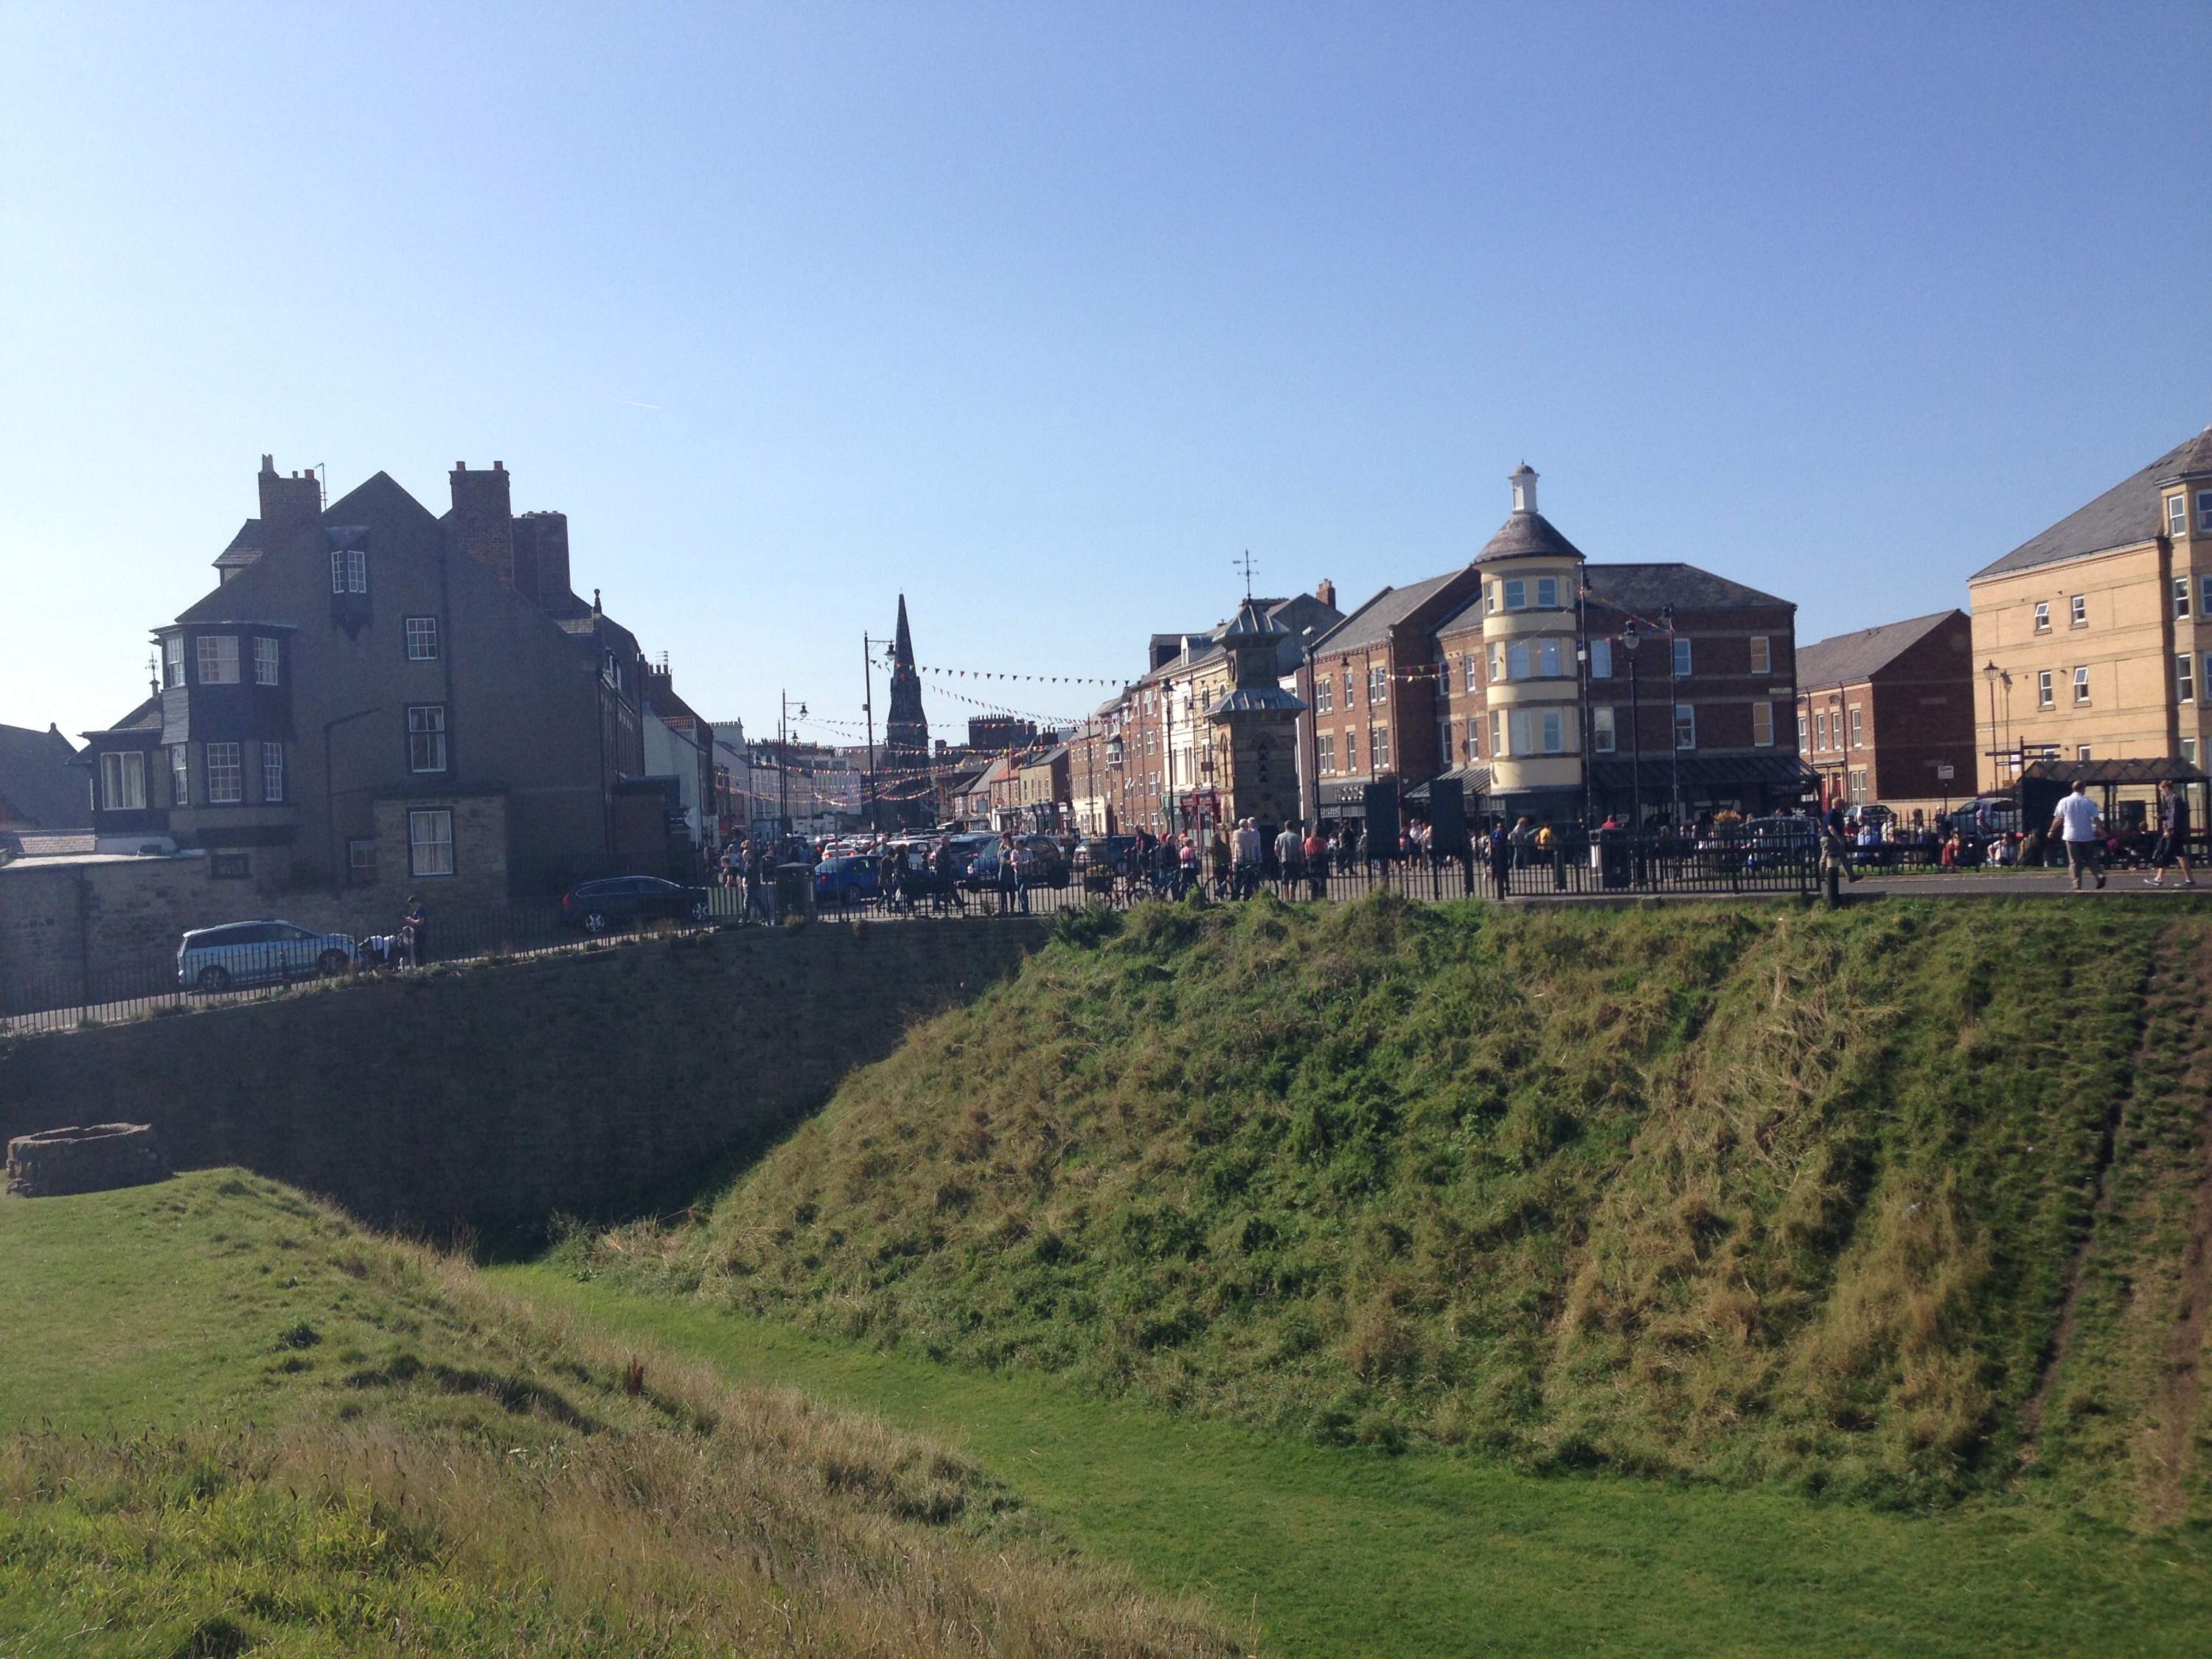 View of Tynemouth high street from the Priory